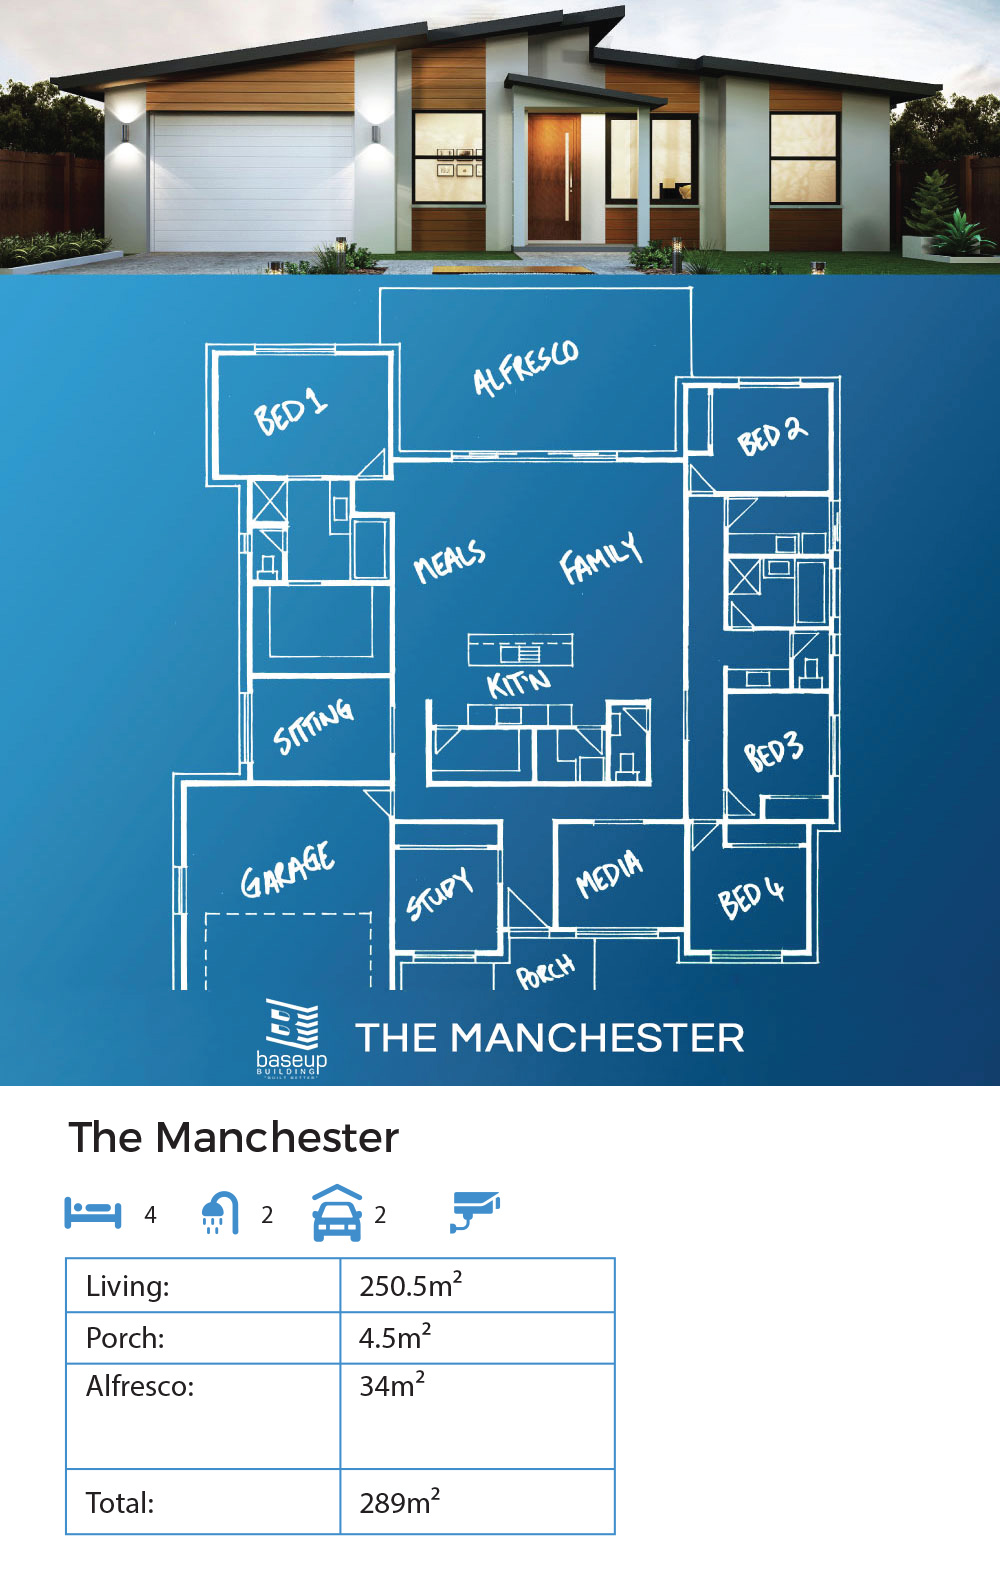 The Manchester